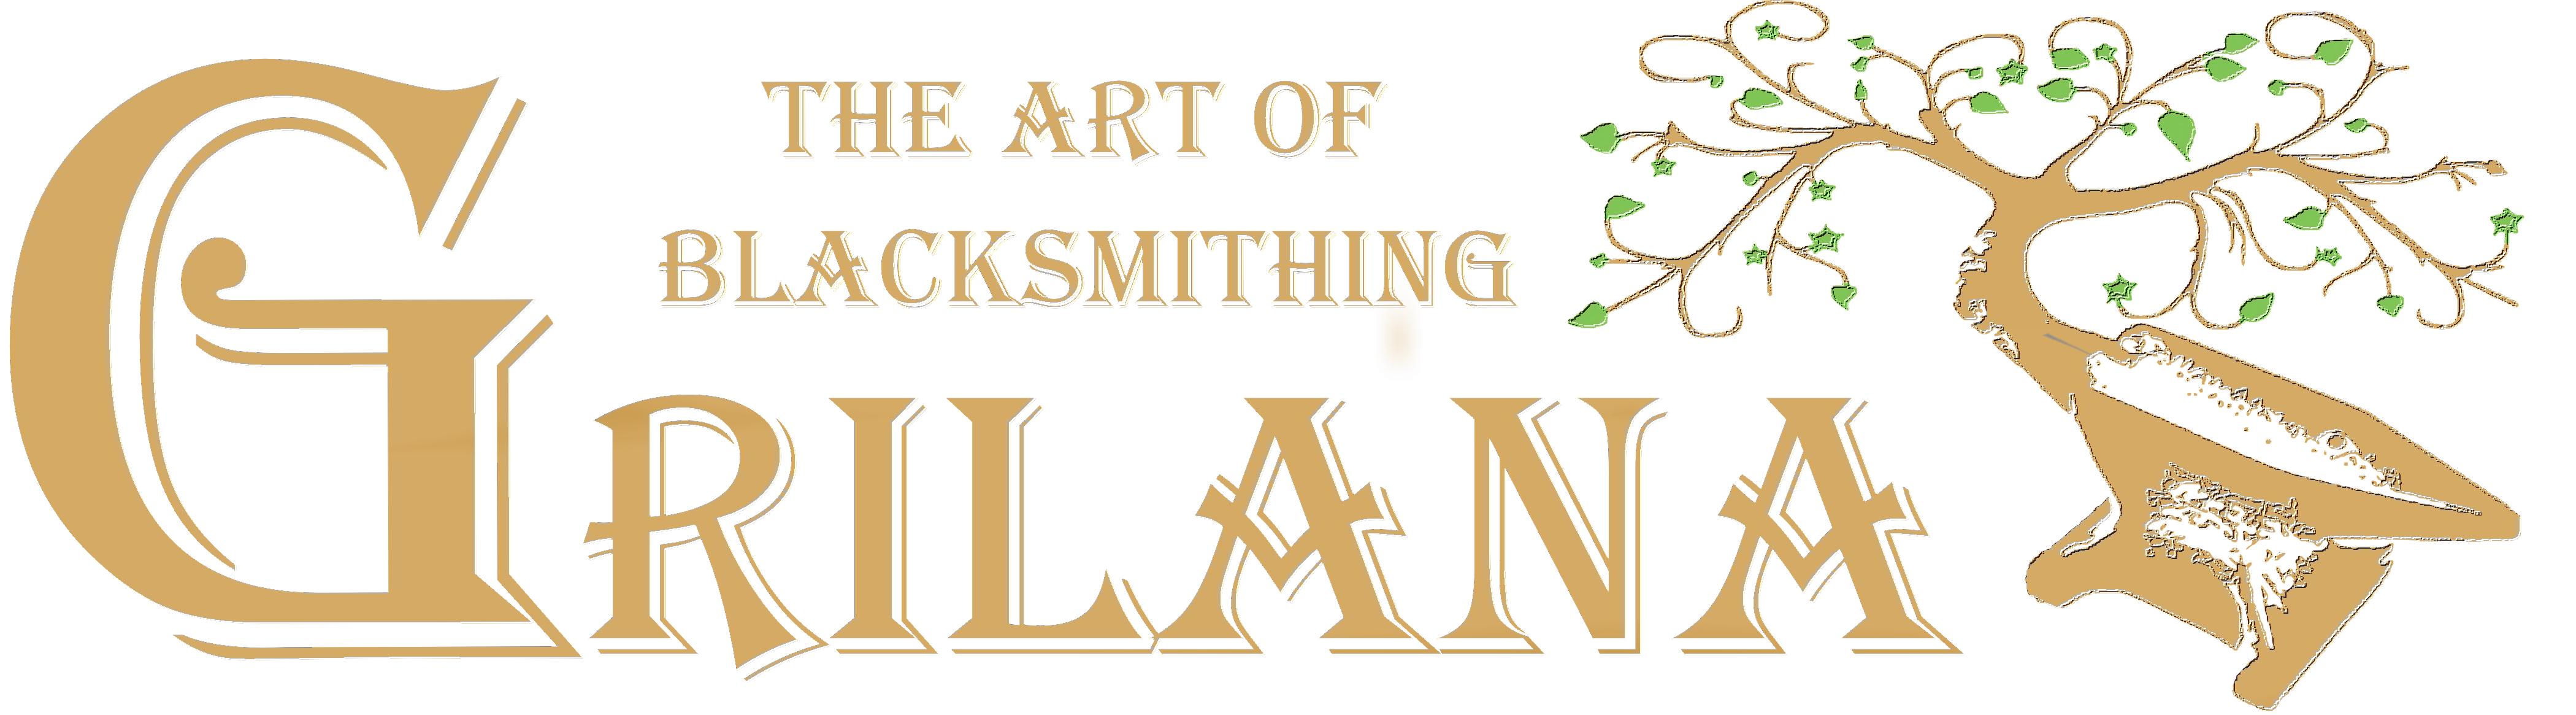 The art of blacksmithing «Grilana»